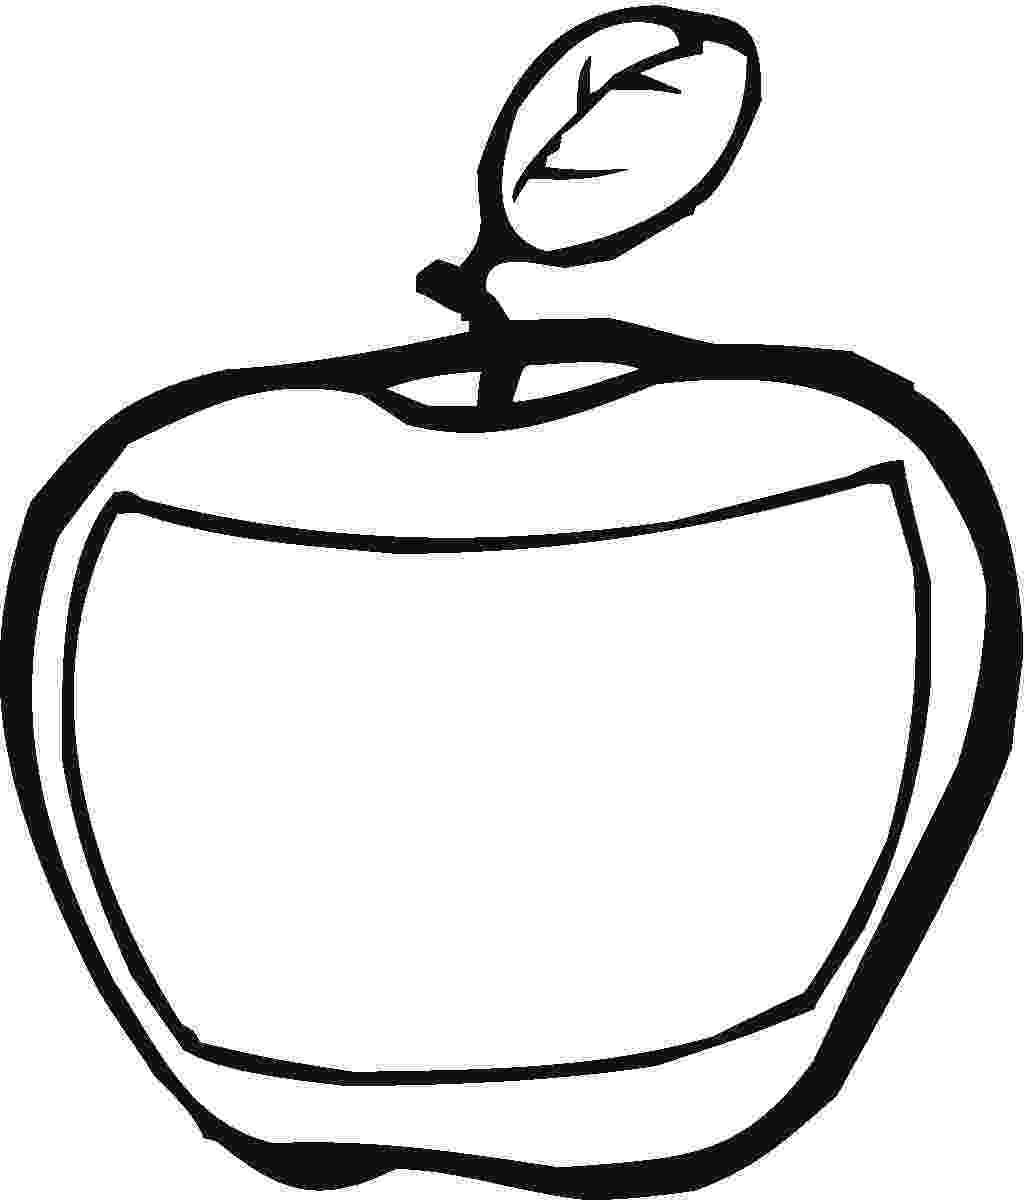 pictures of apples for kids coloring pages for kids apple coloring pages for kids apples of kids for pictures